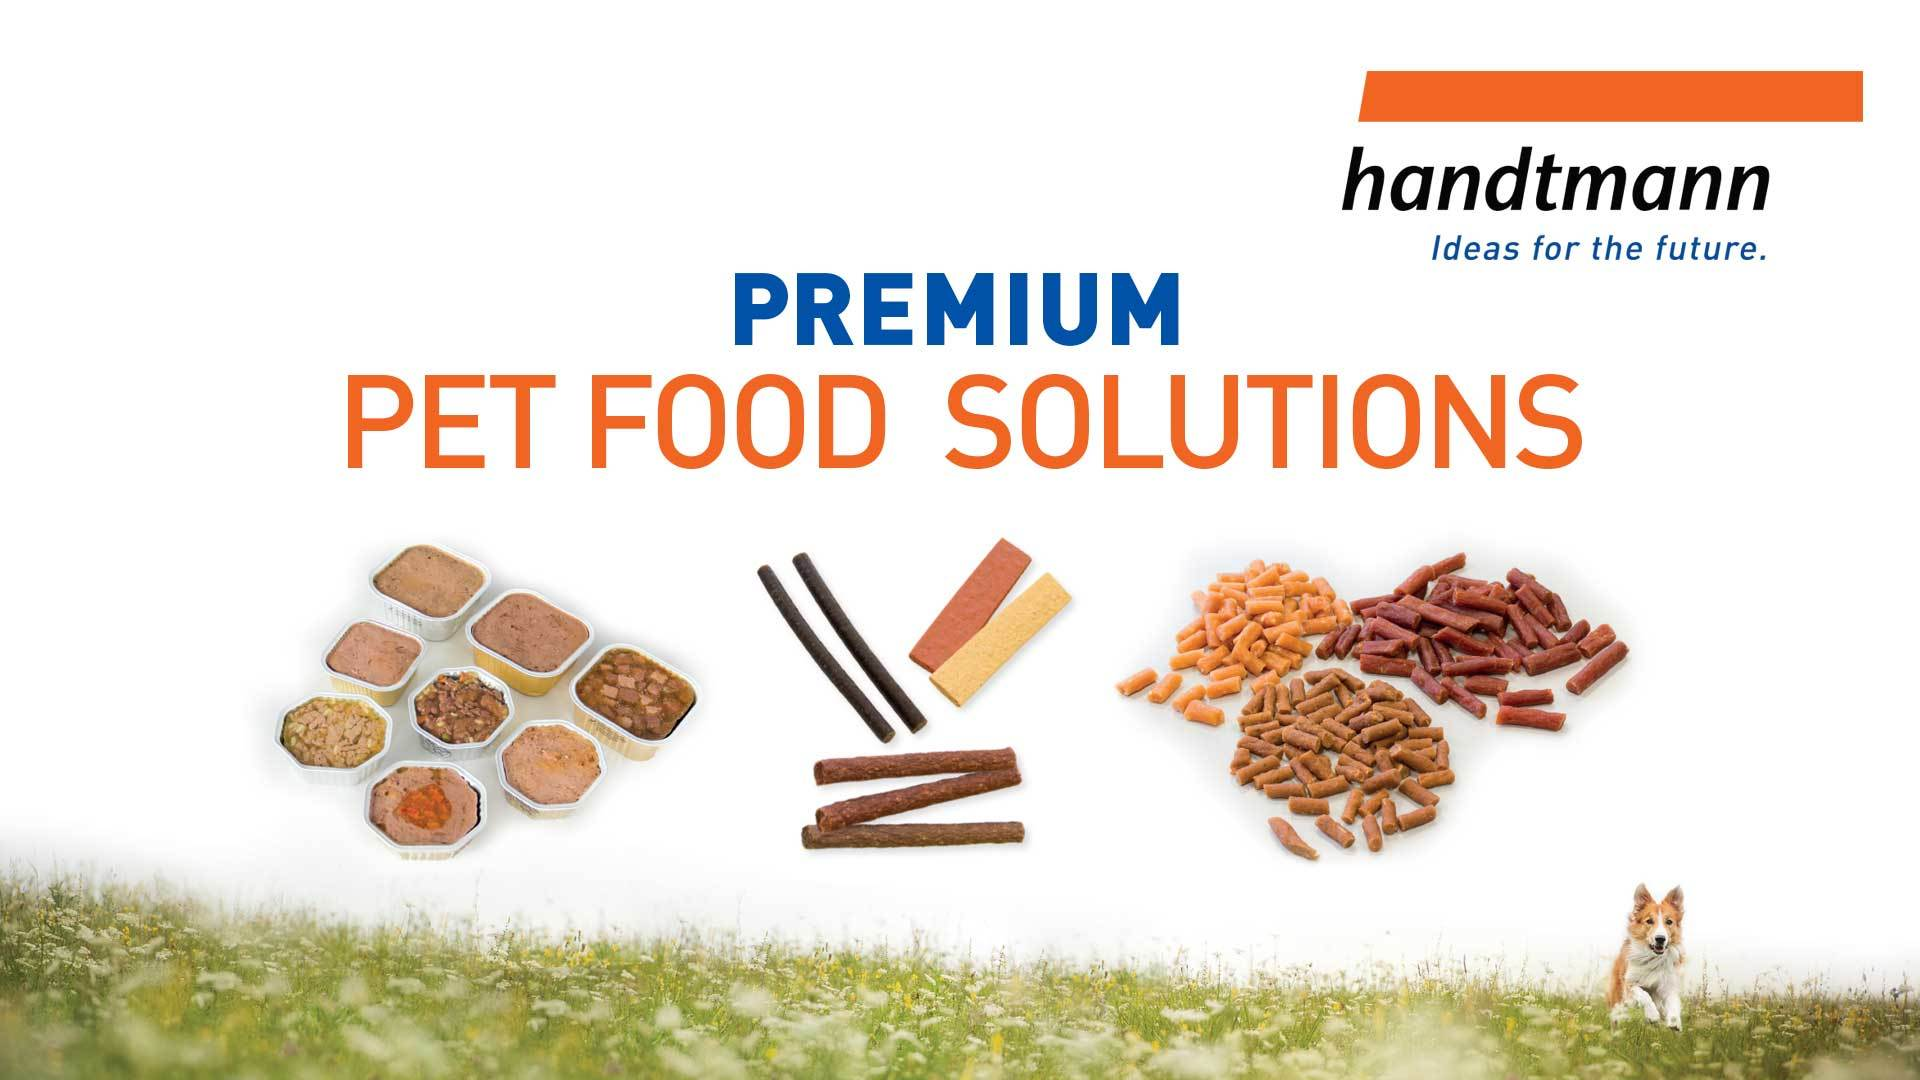 Handtmann's Pet Food Solutions